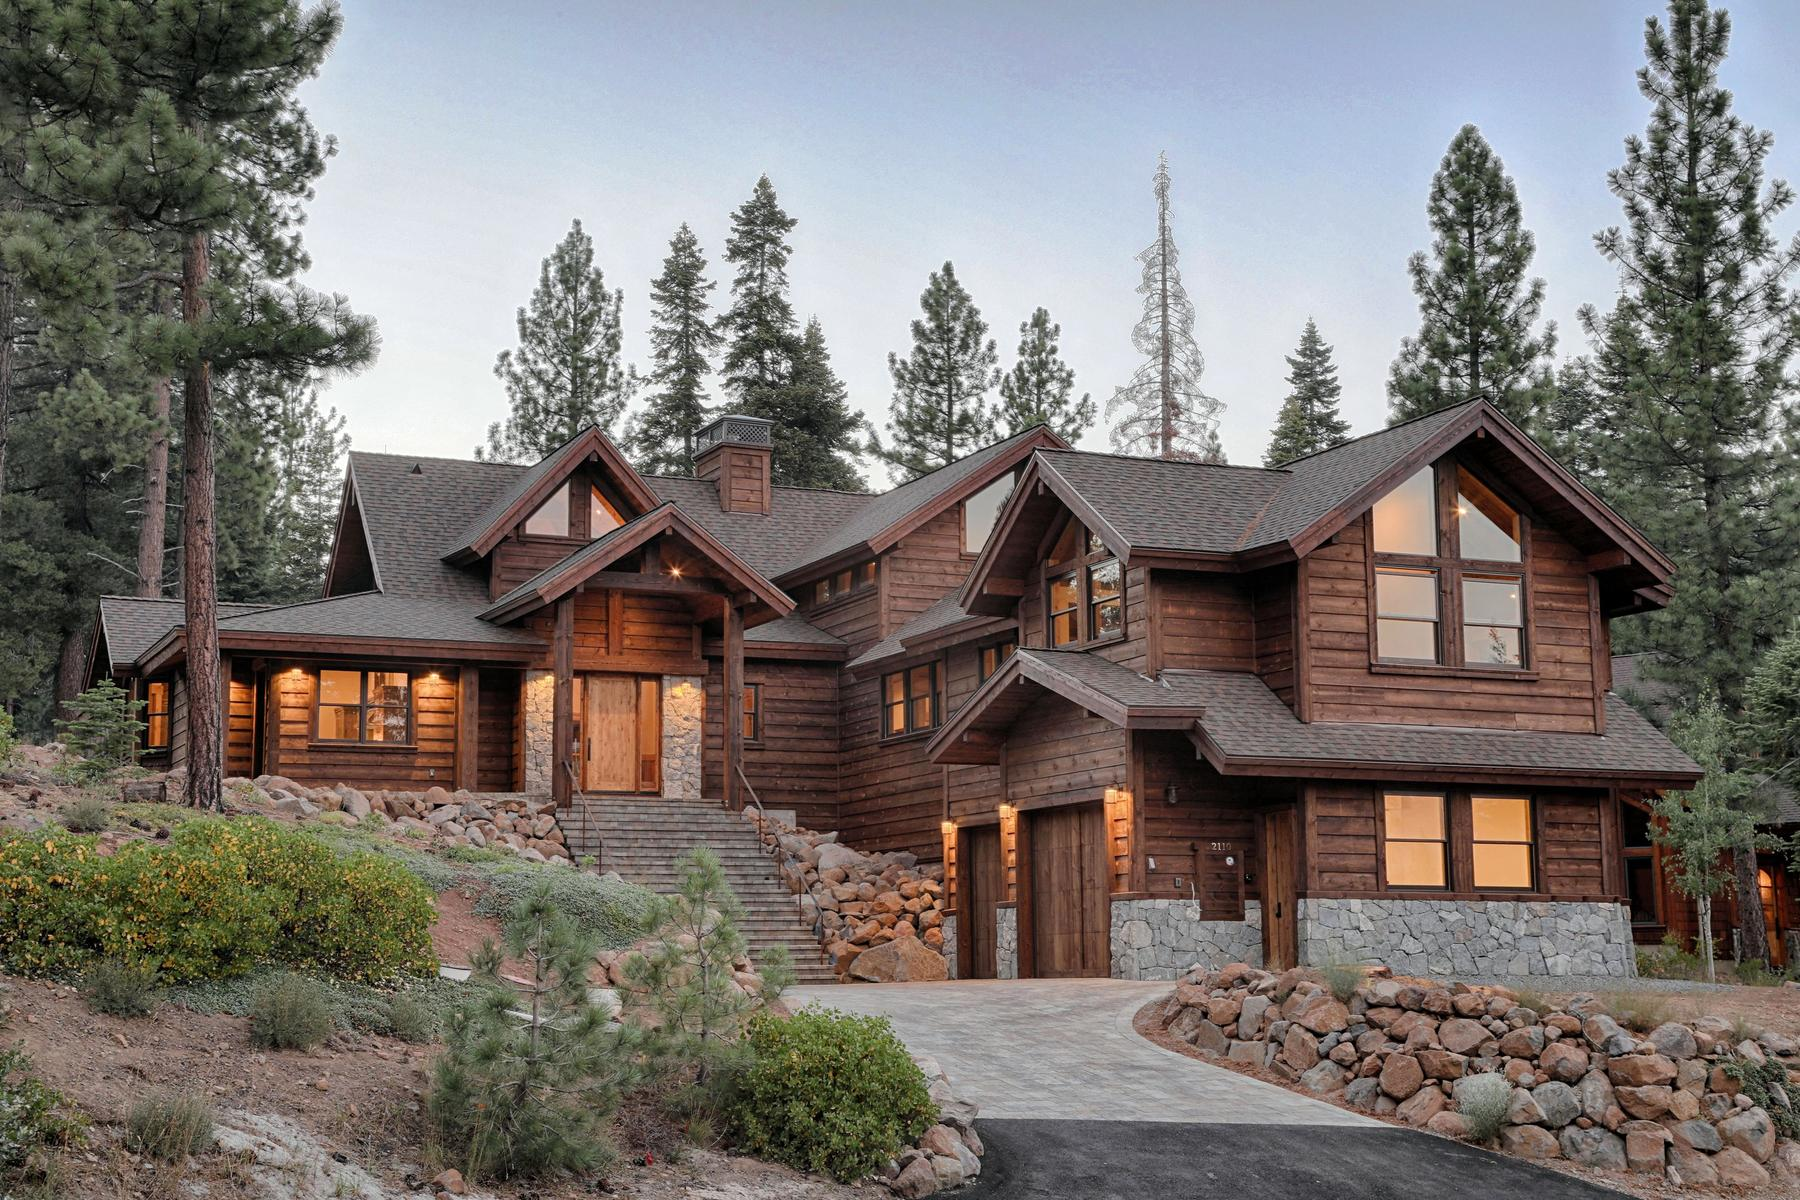 Property for Active at 2110 Eagle Feather Court , Truckee, CA 2110 Eagle Feather Truckee, California 96161 United States